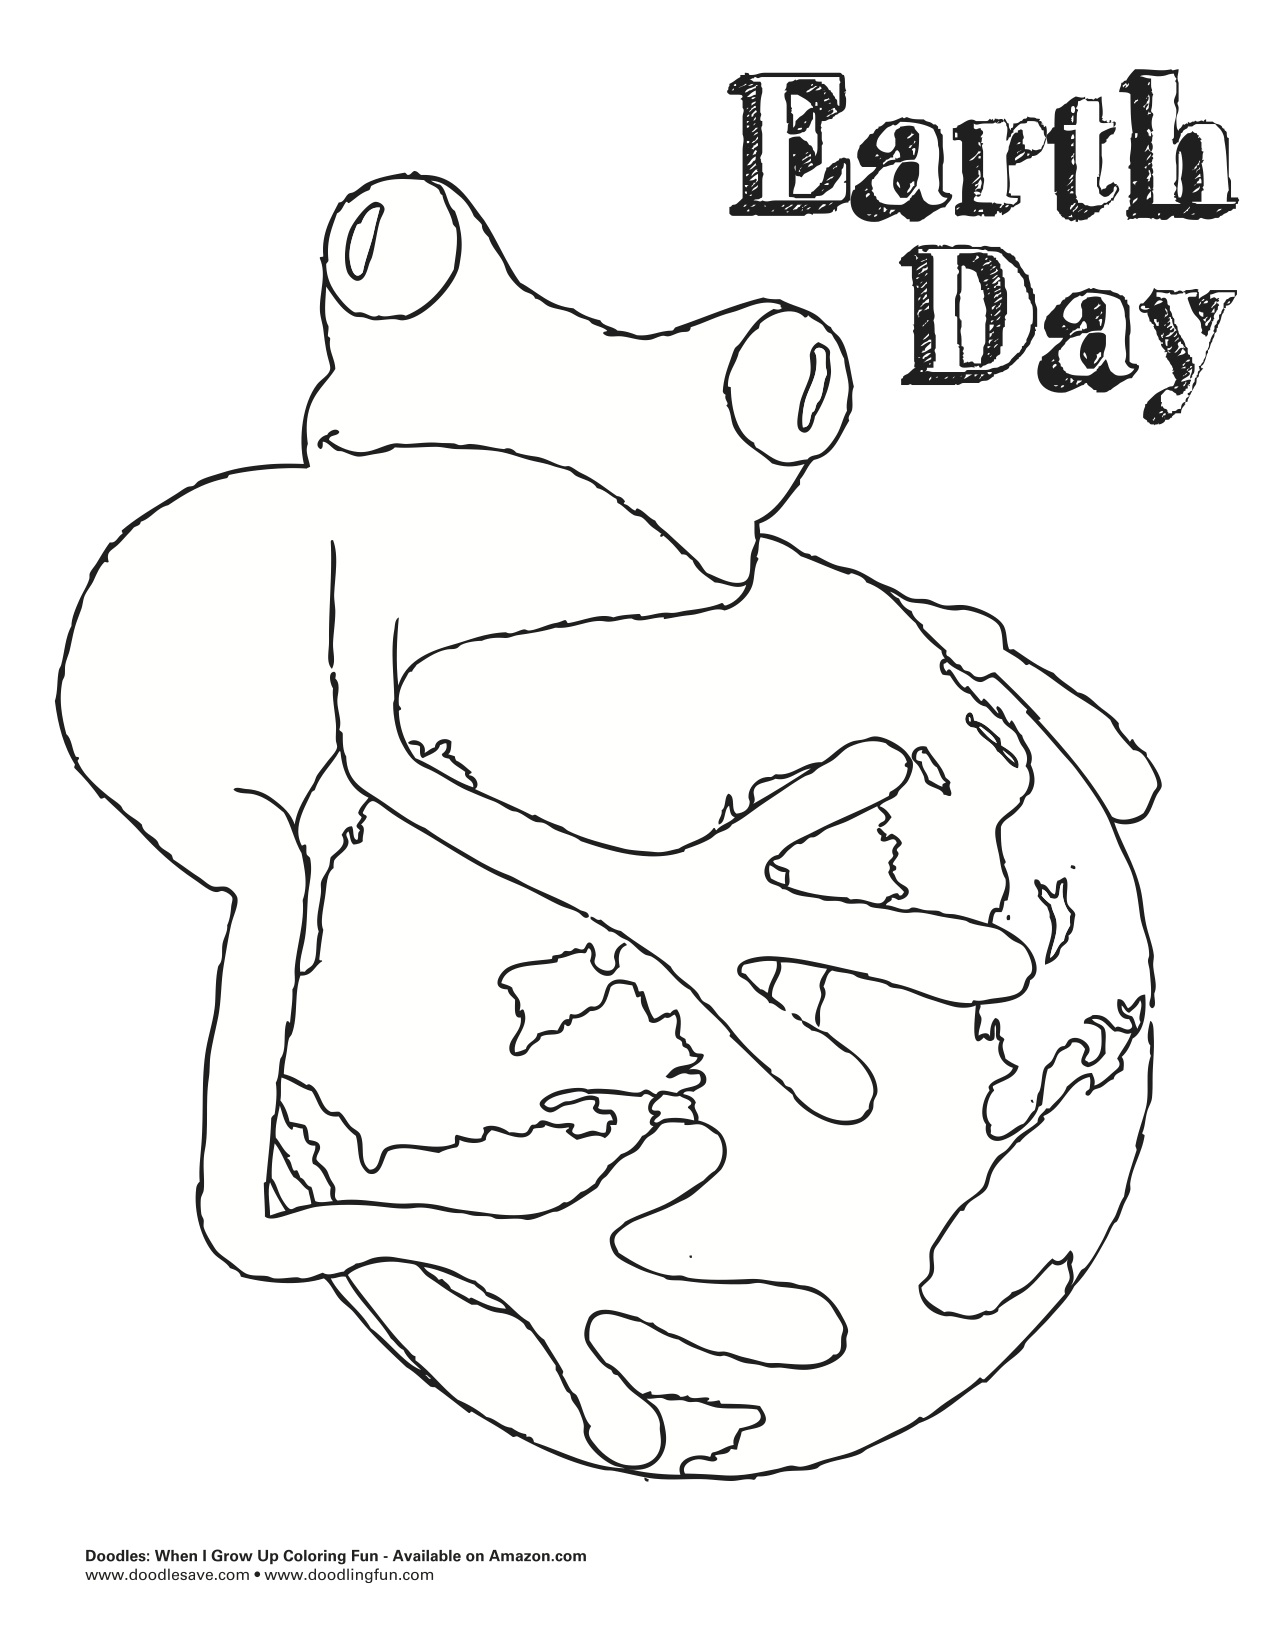 earth day coloring pages 2013 - photo#19